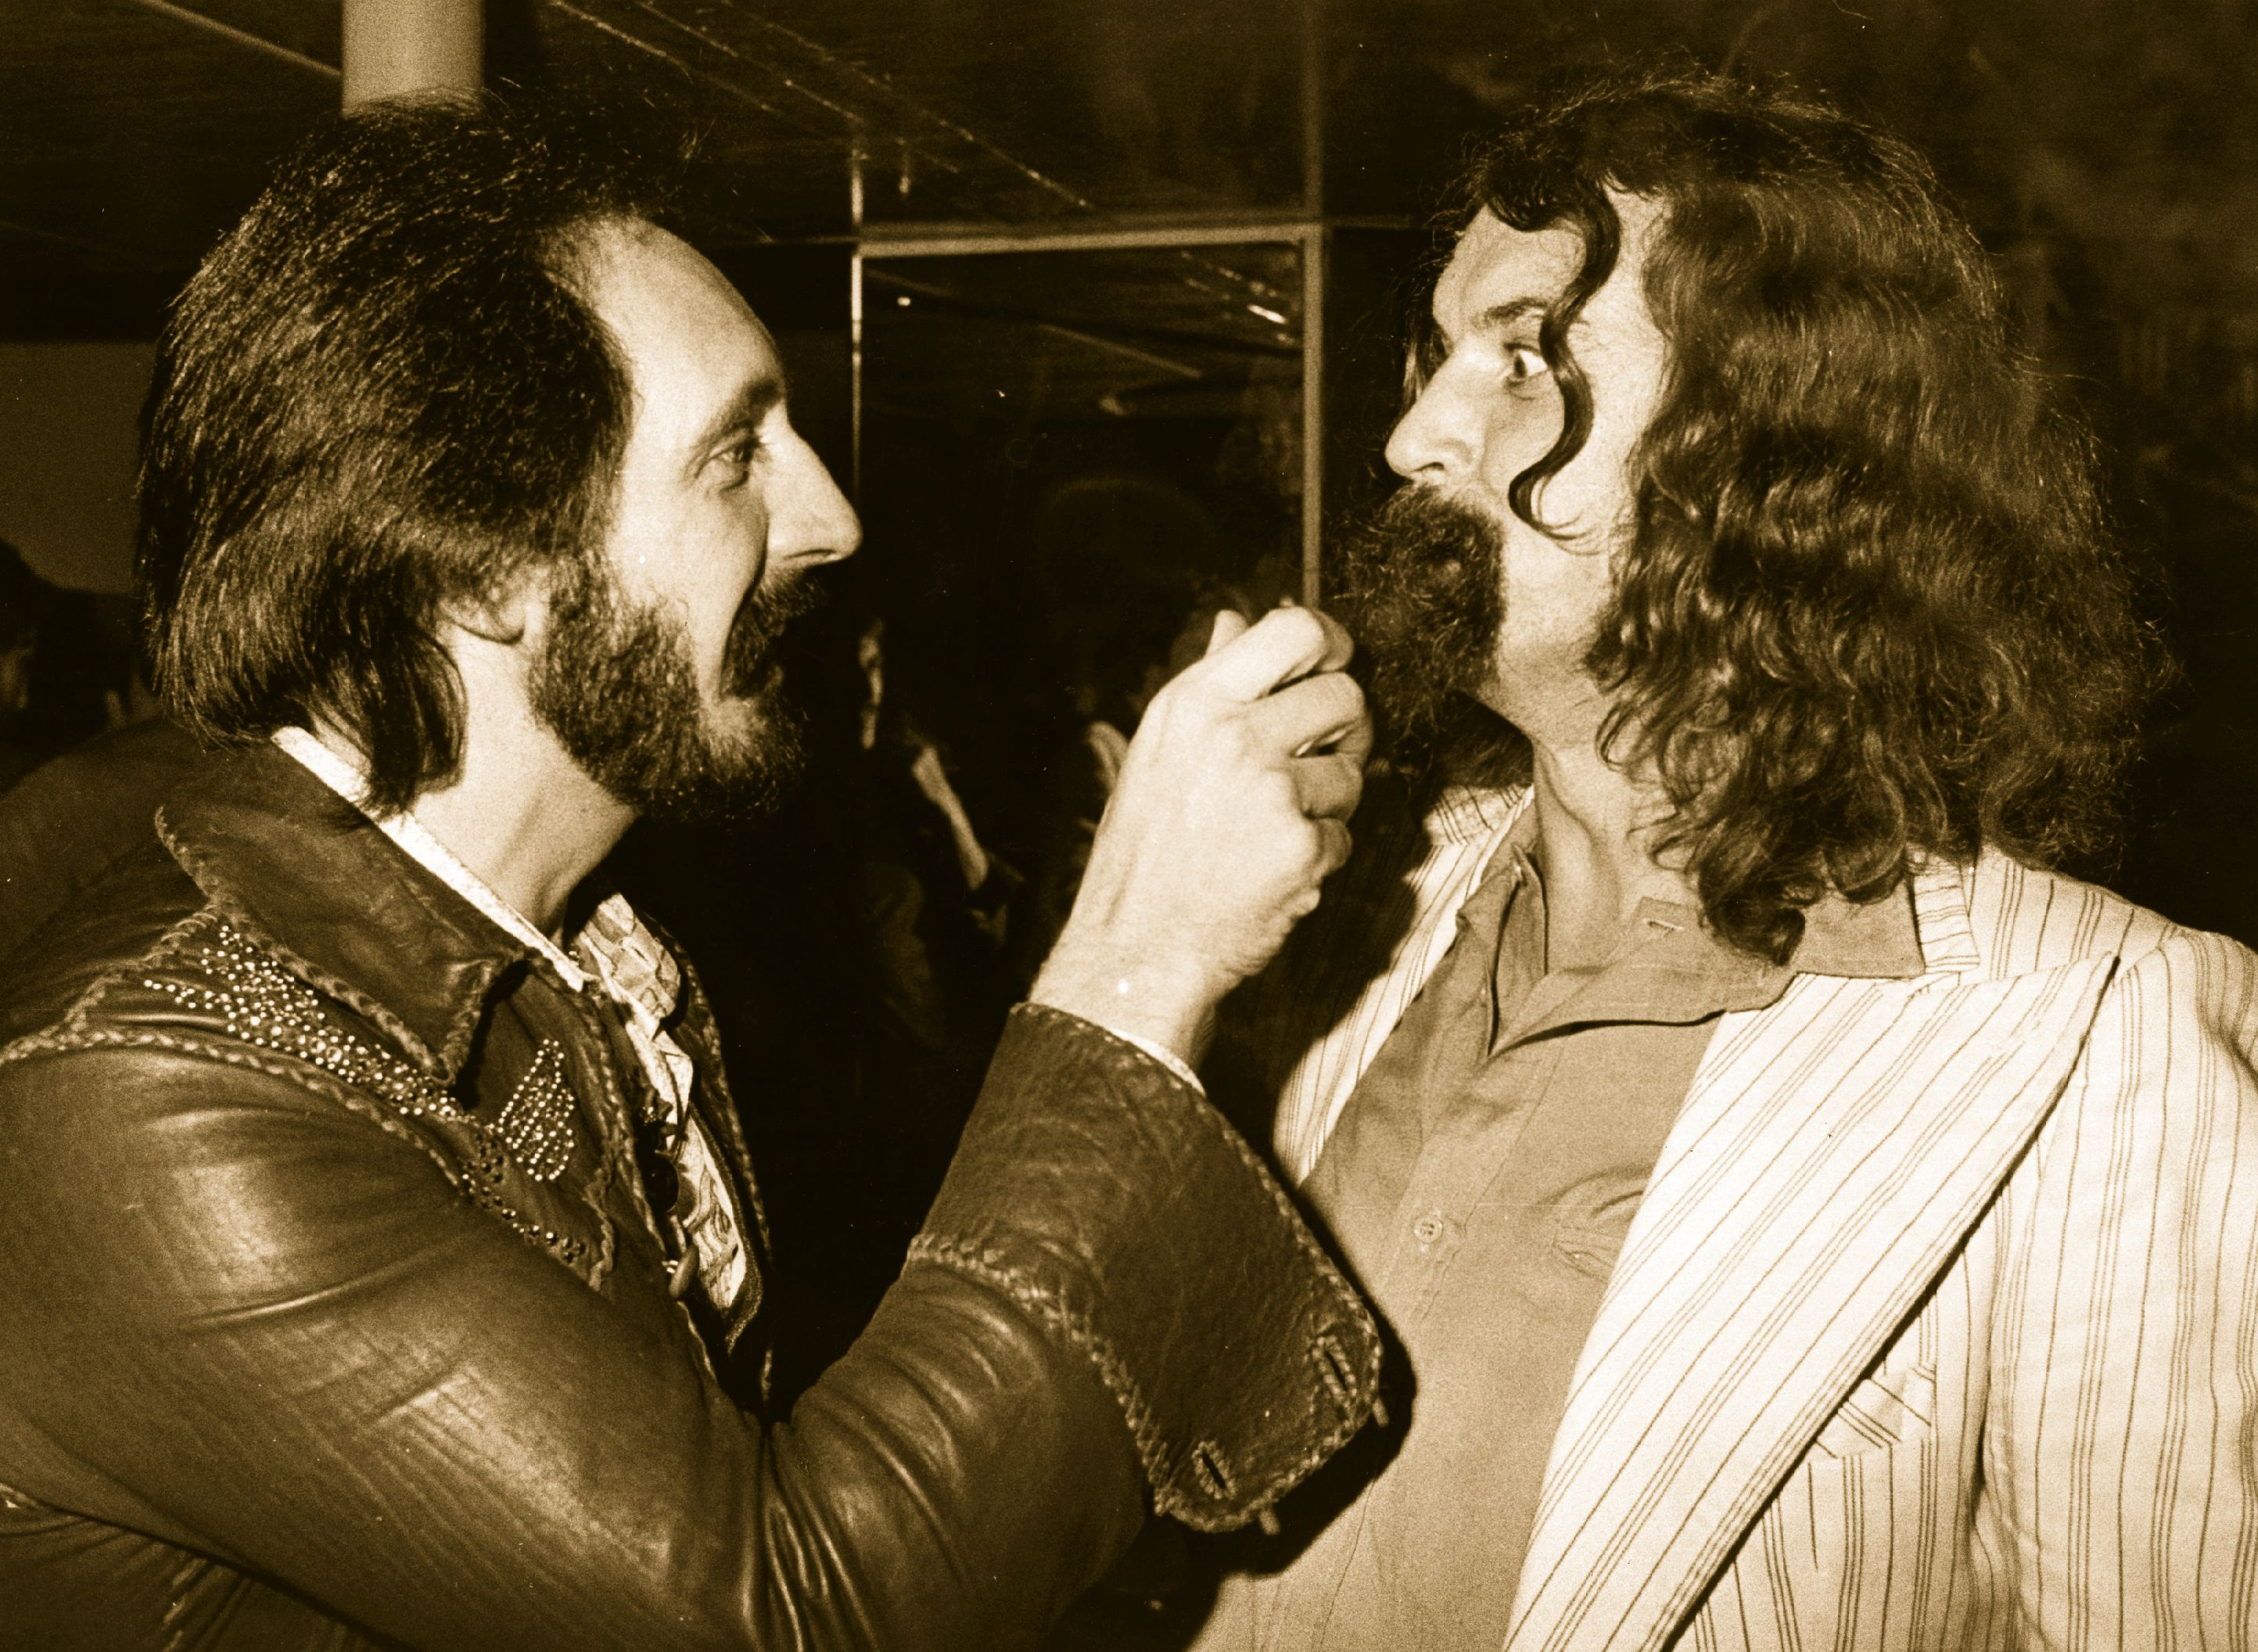 17th October 1979:  John Entwistle (1944 - 2002, left), bass player with British rock band The Who, gives a friendly tug on the beard of Scottish comedian Billy Connolly at the latter's party at the London nightclub Legends.  (Photo by Jon Player/Evening Standard/Getty Images)